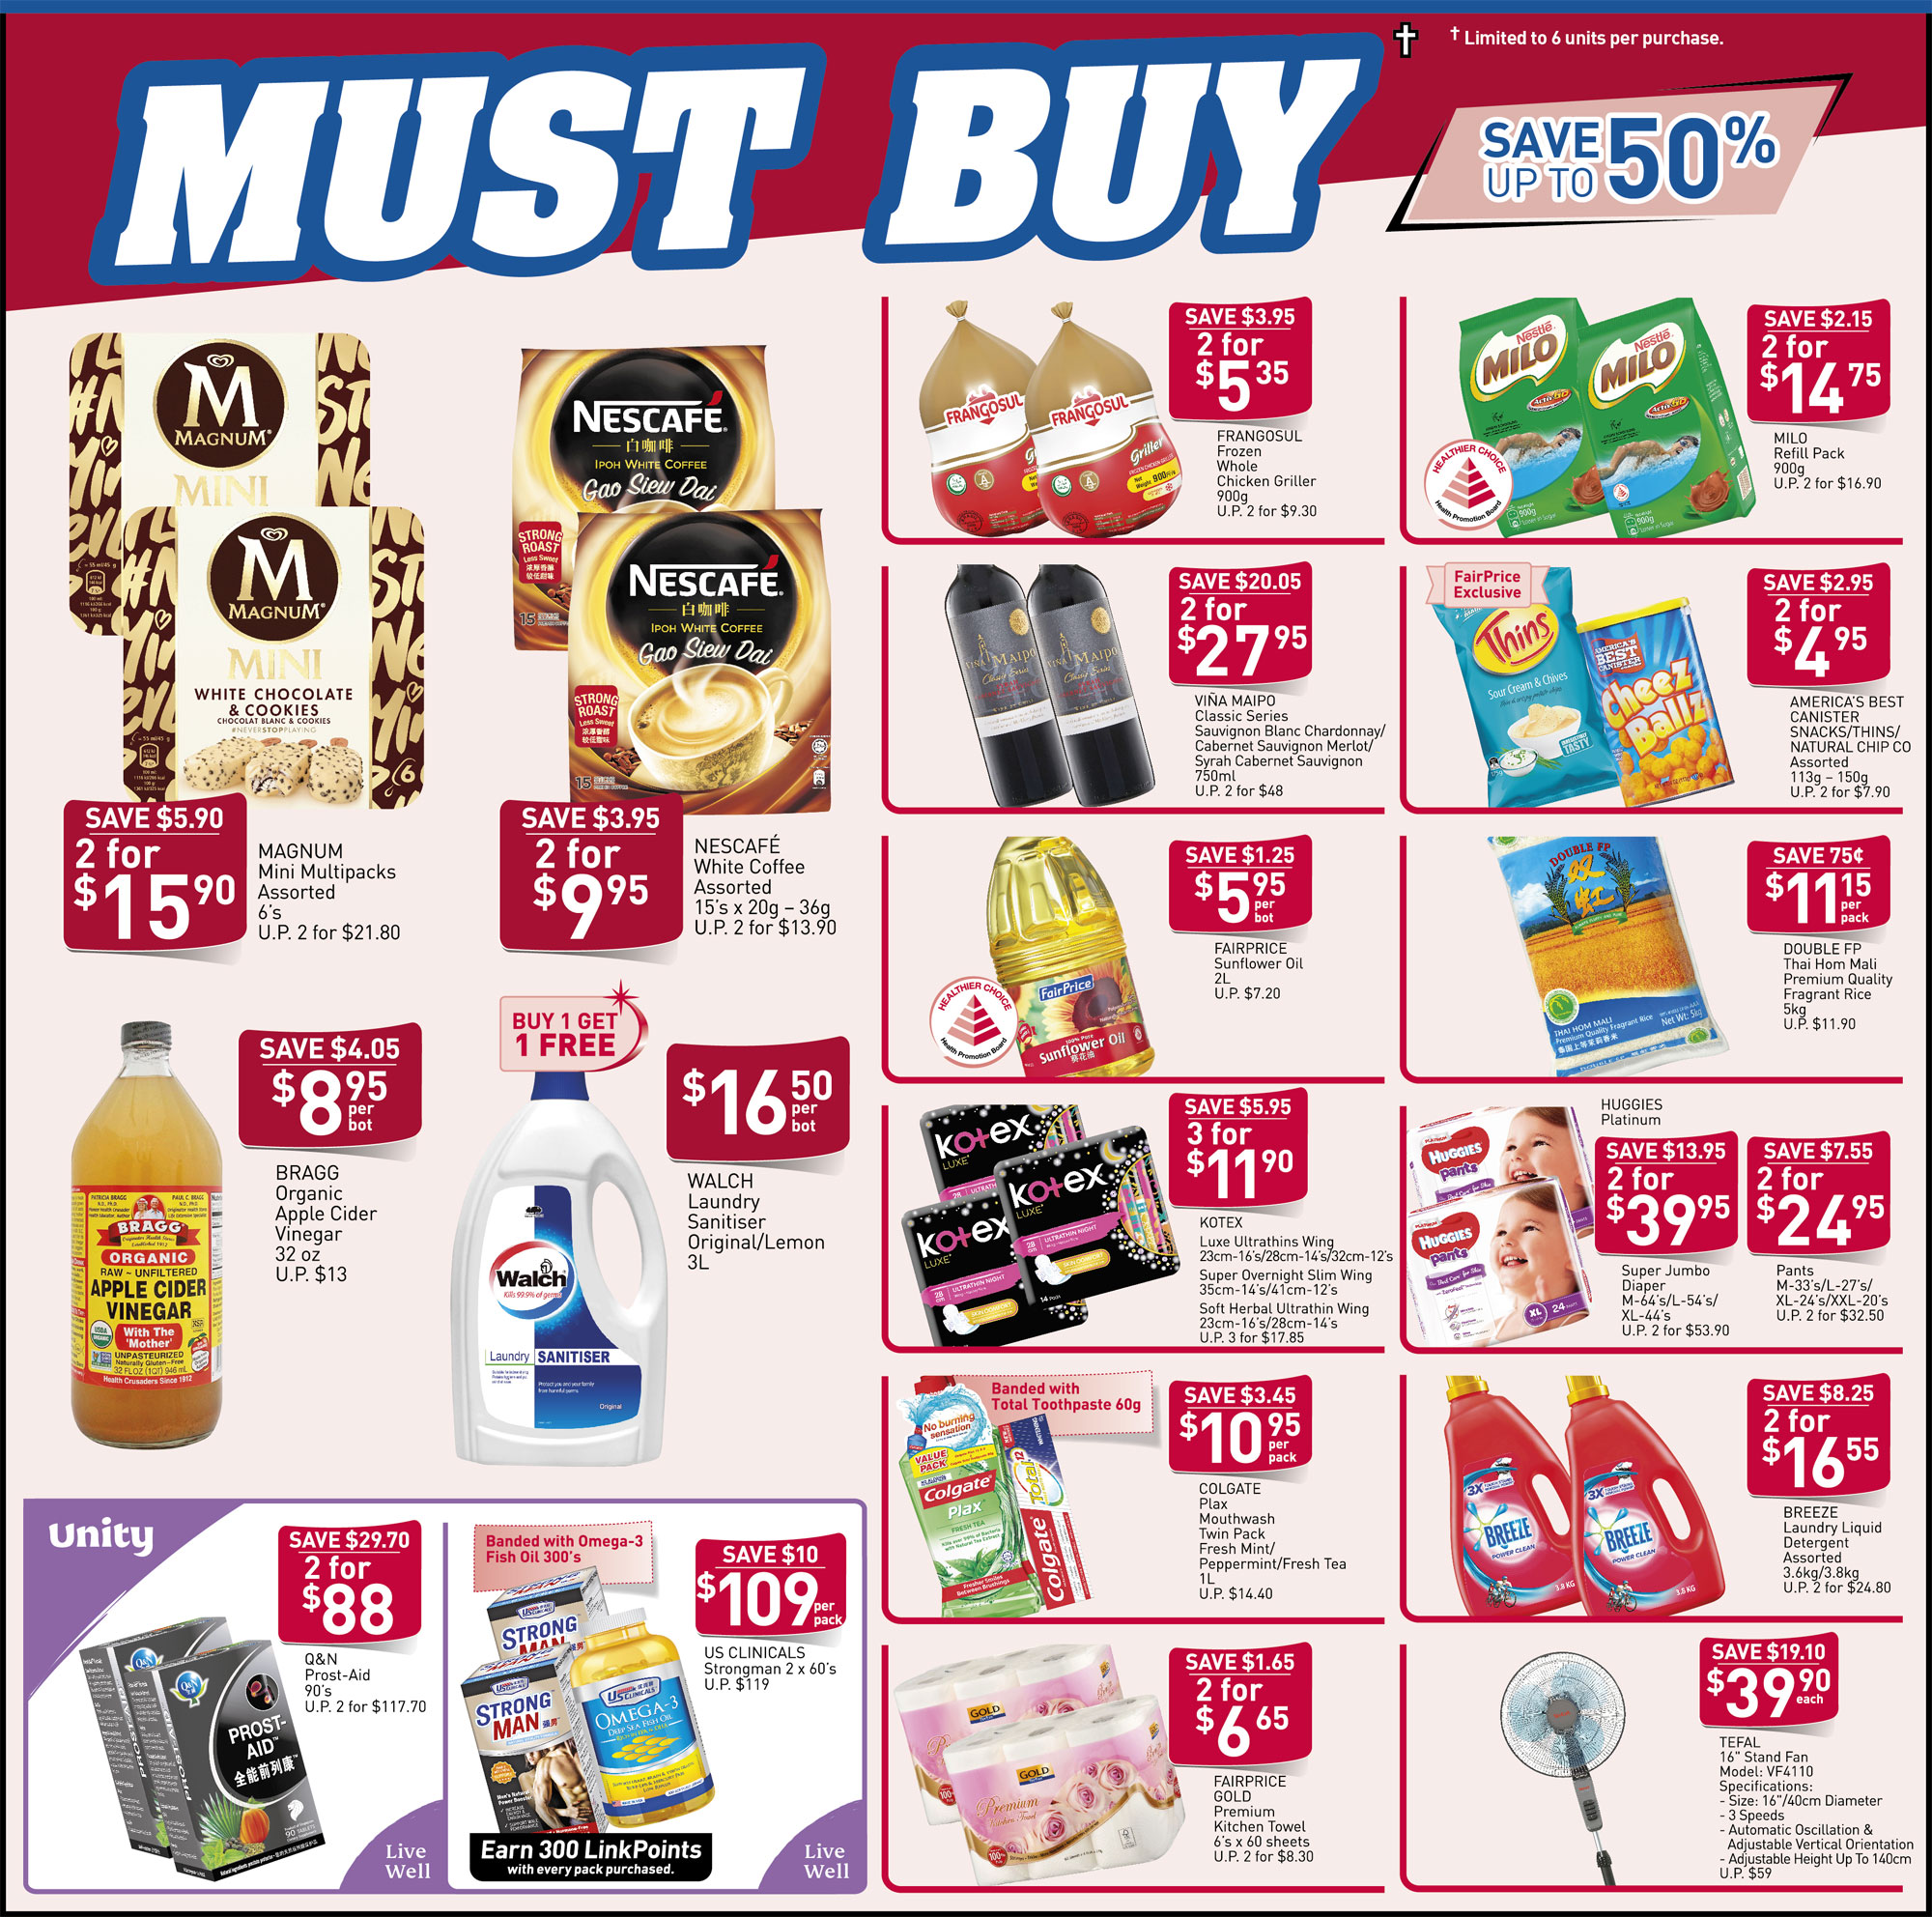 NTUC FairPrice Singapore Your Weekly Saver Promotion 19-25 Sep 2019 | Why Not Deals 6 & Promotions